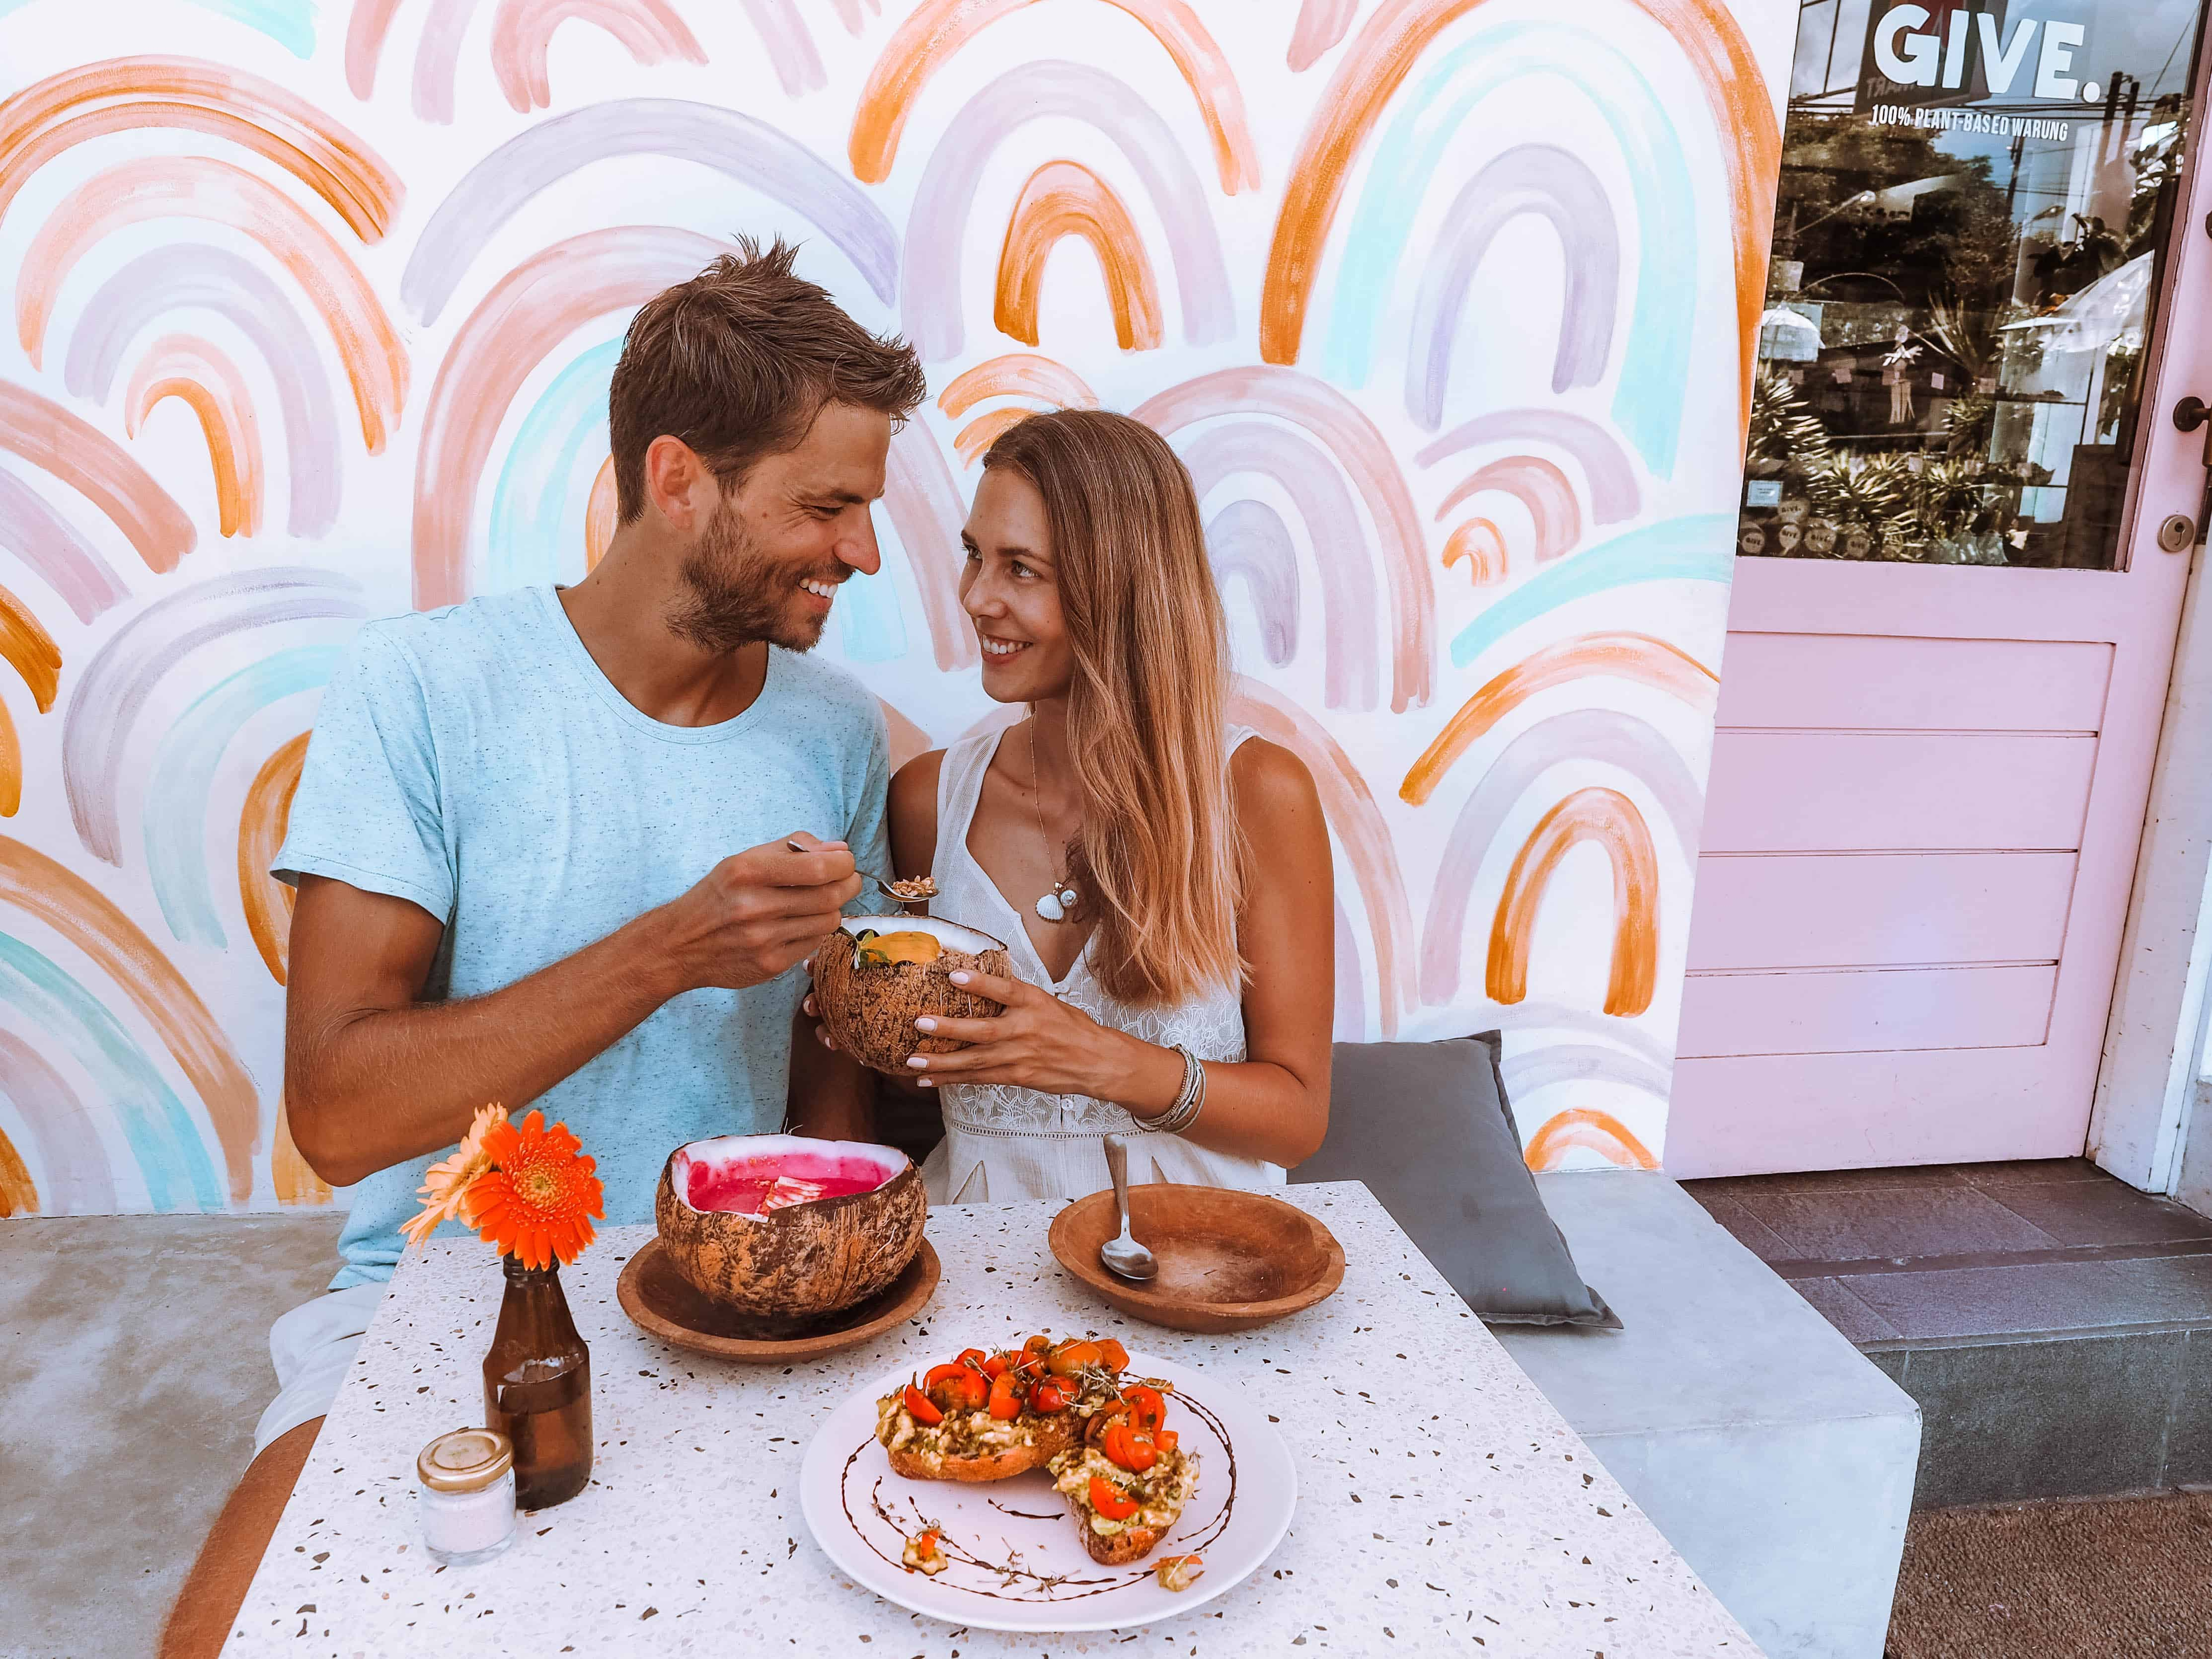 couple eating smoothie bowls at give cafe canggu bali